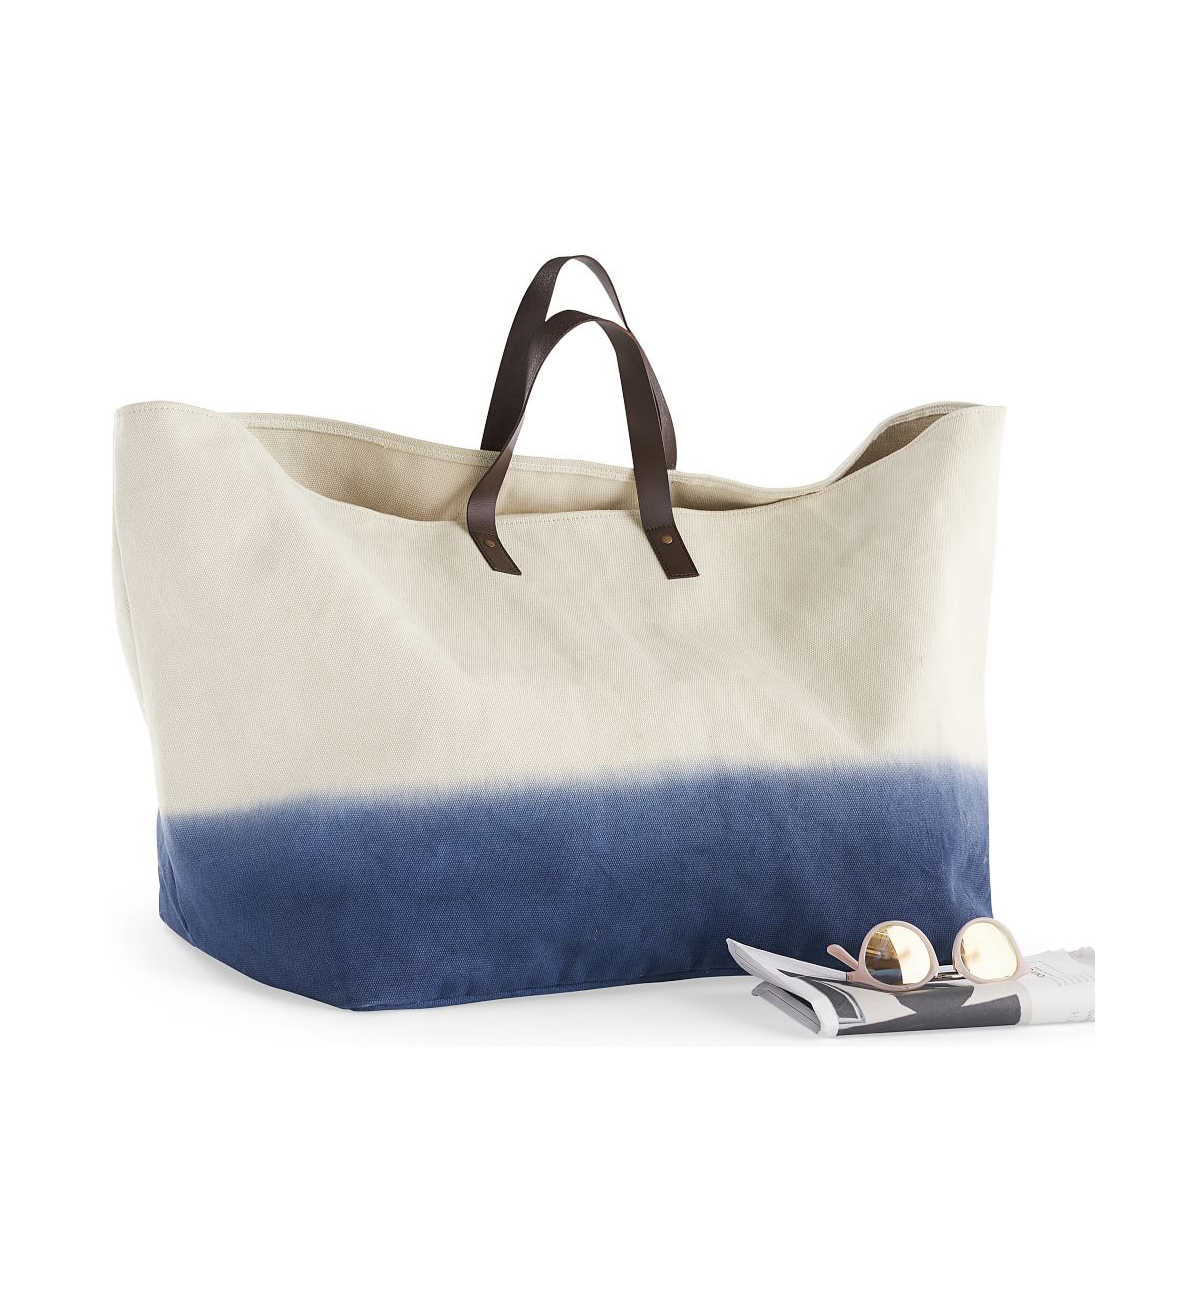 The Emily & Merrit Ombre Tote